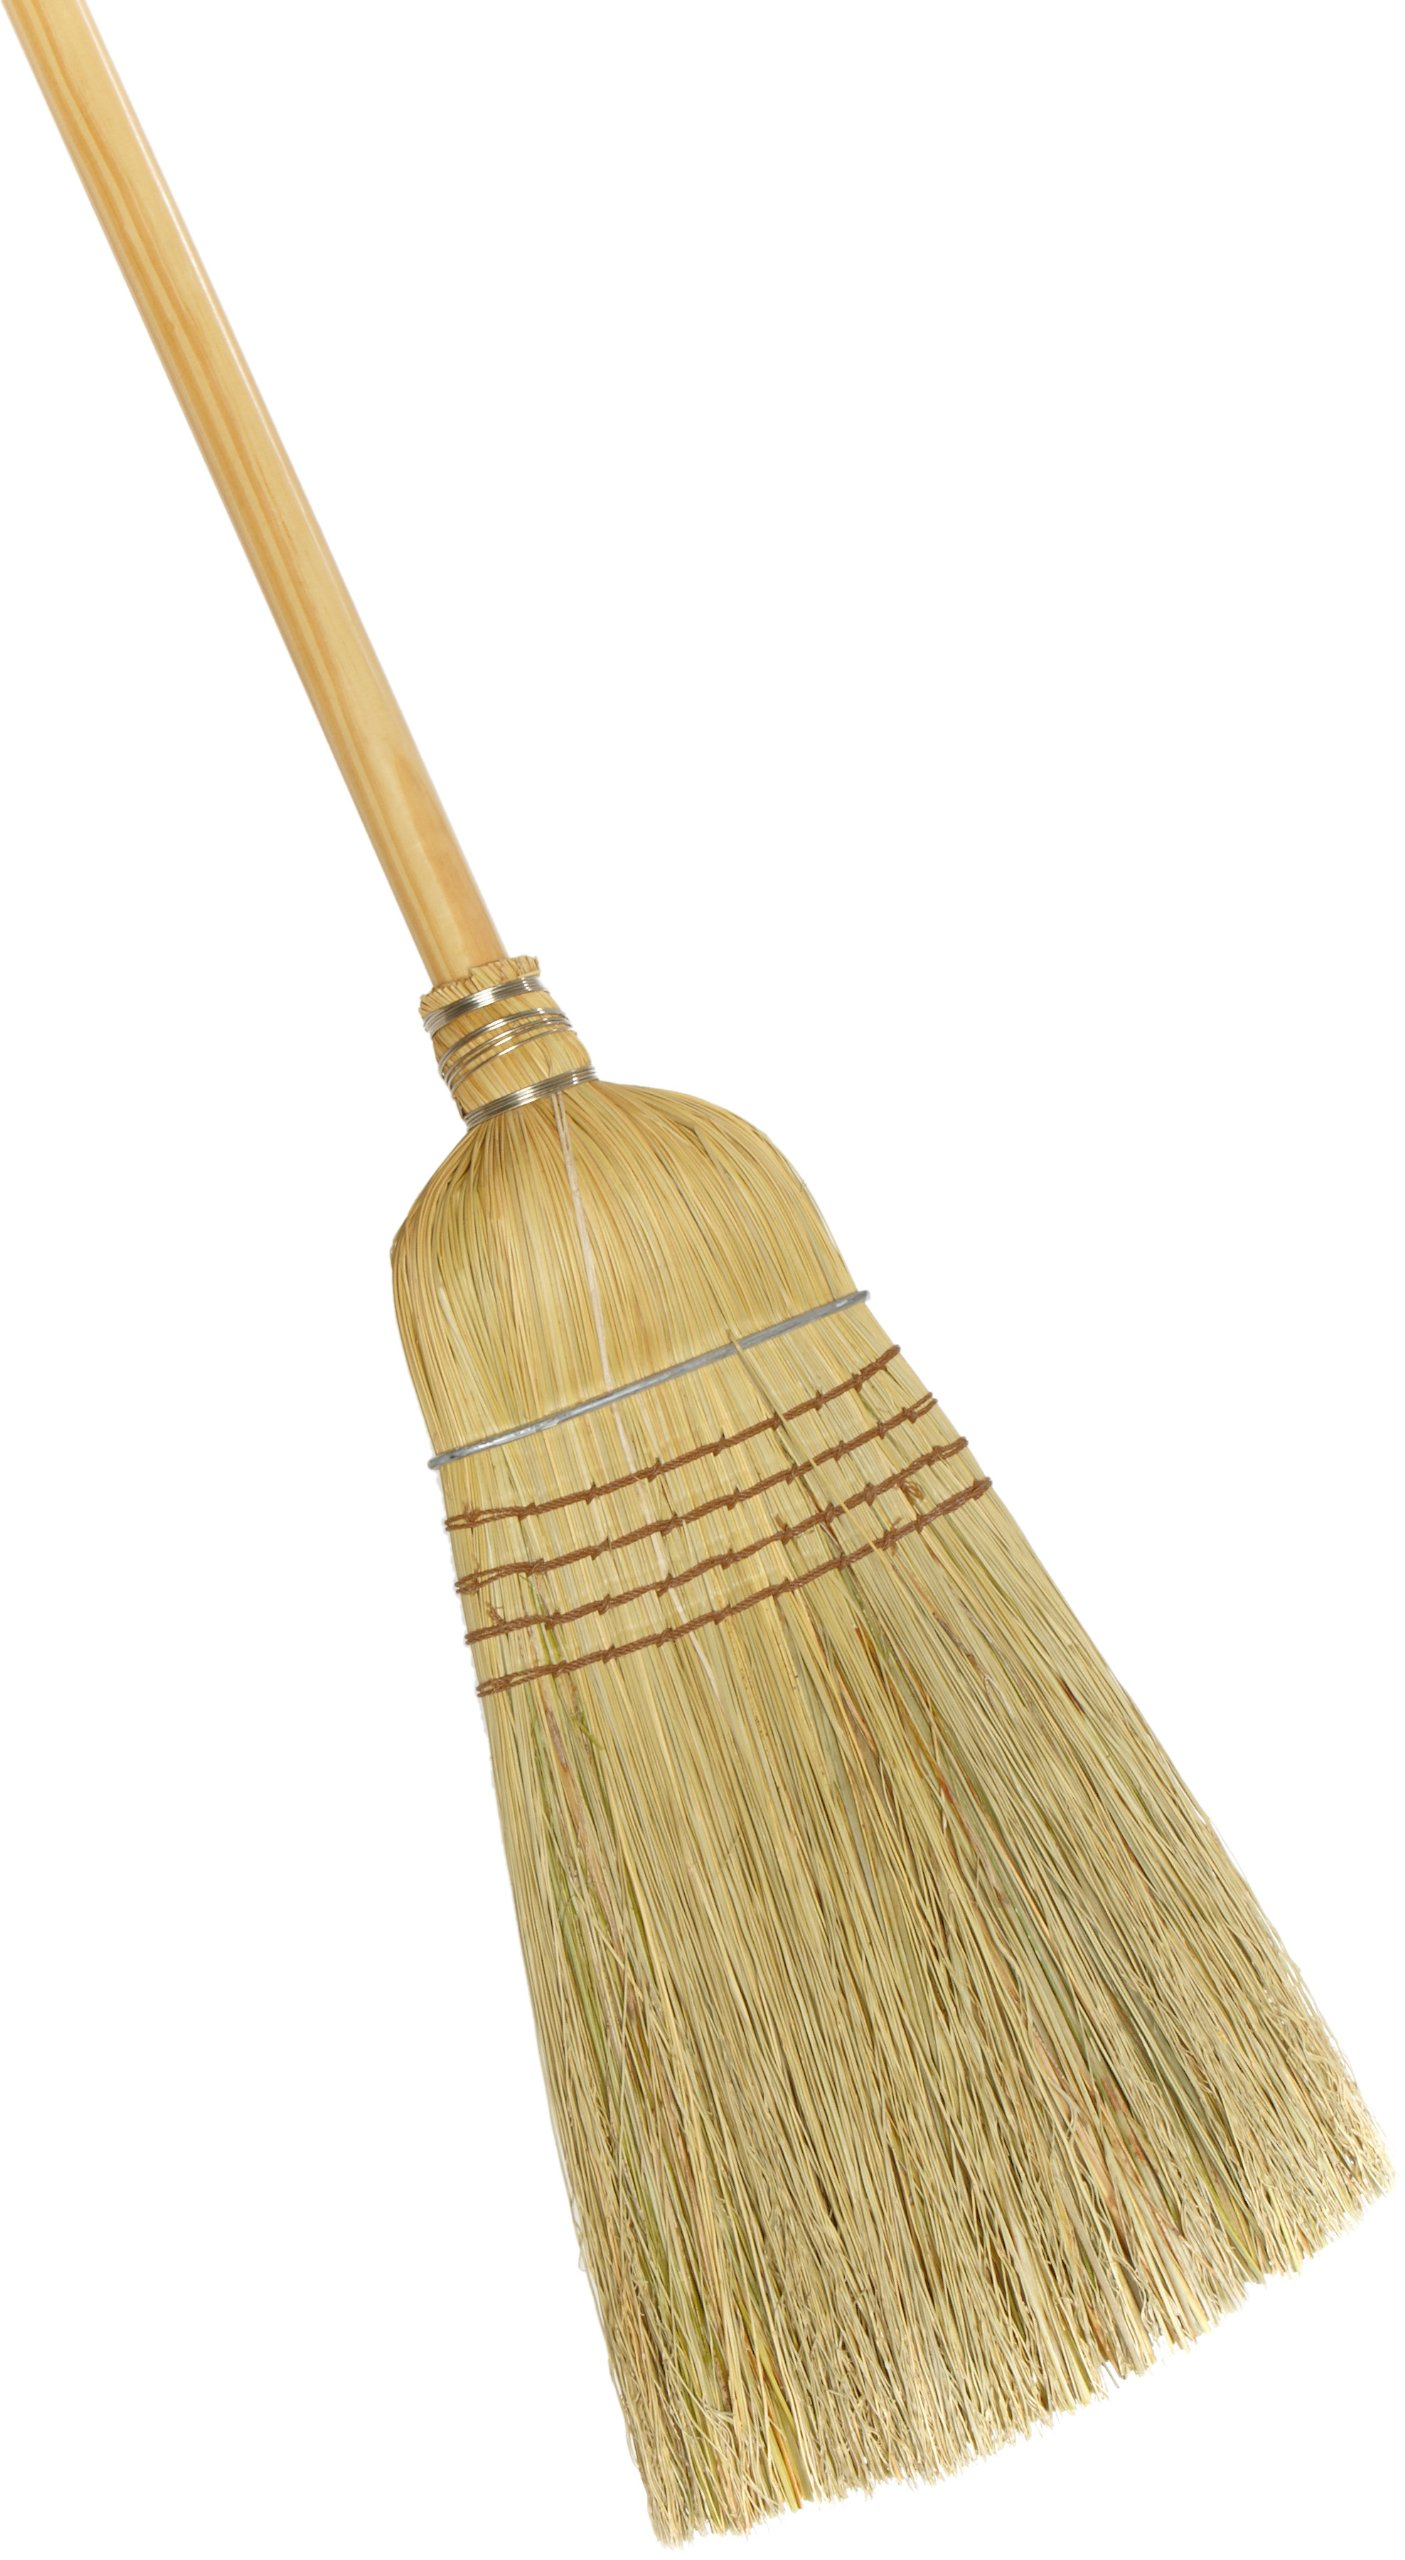 Weiler 44008 Corn Fiber Heavy-Duty Wire Banded Warehouse Broom with Wood Handle, 1-1/2'' Head Width, 57'' Overall Length